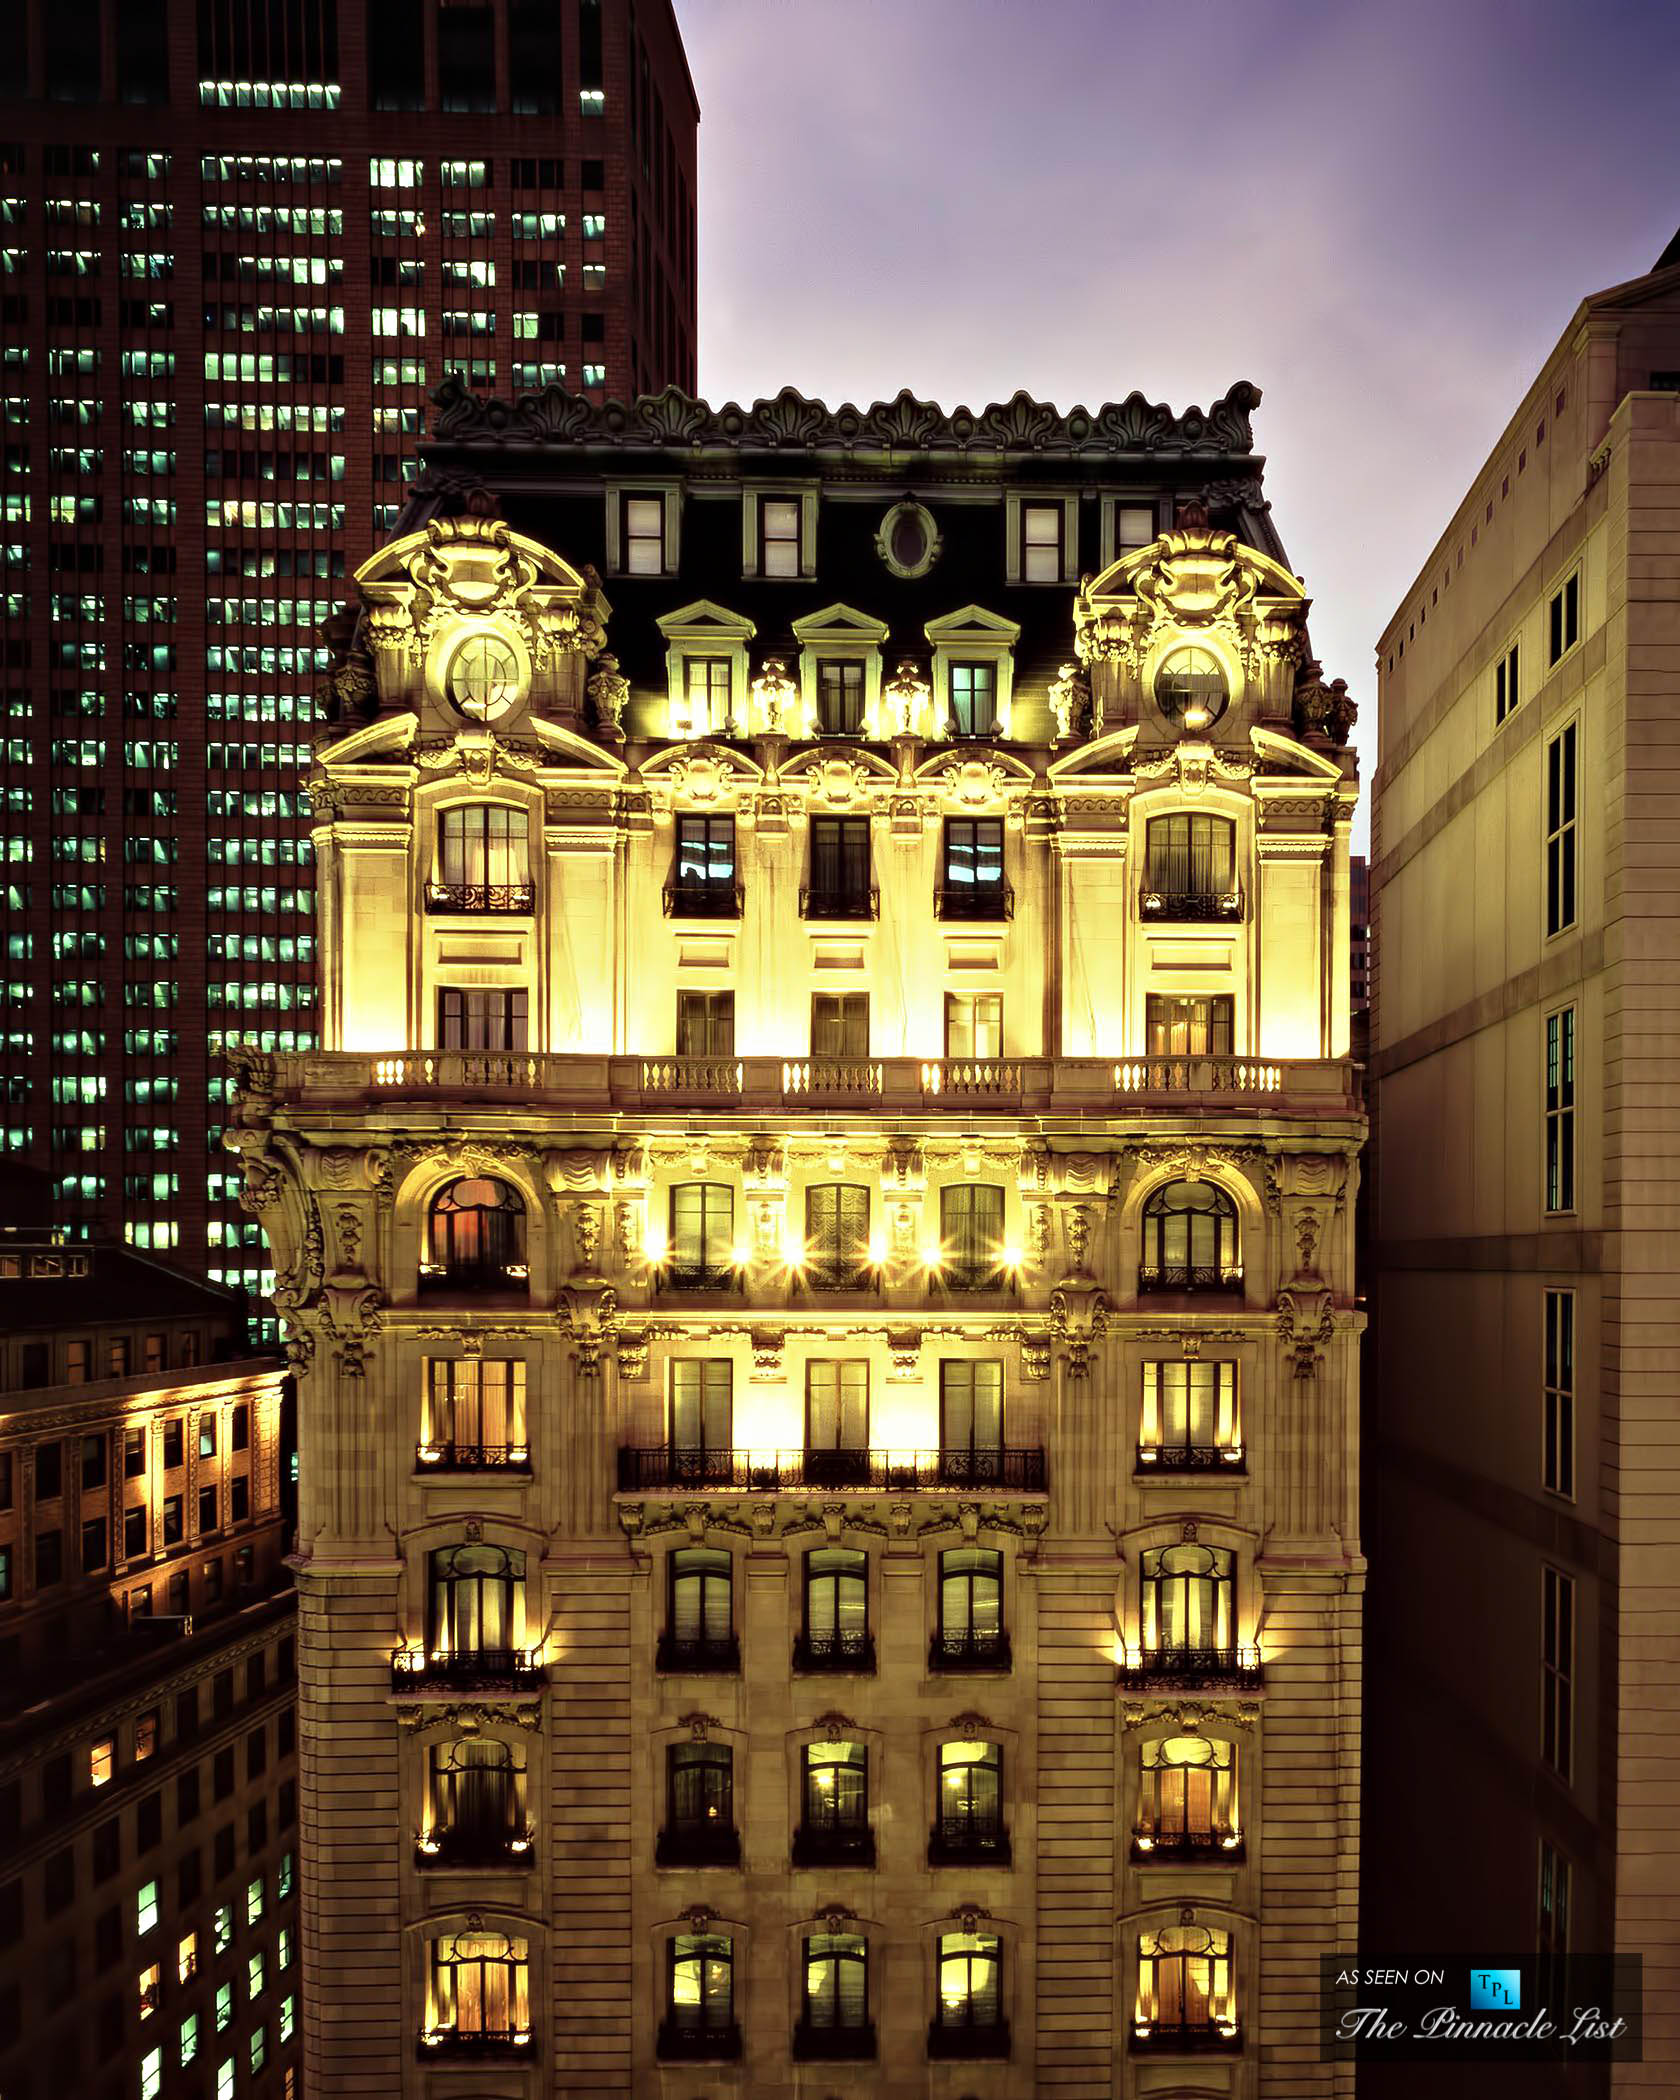 St. Regis Hotel - 2 E 55th St, New York, NY, USA